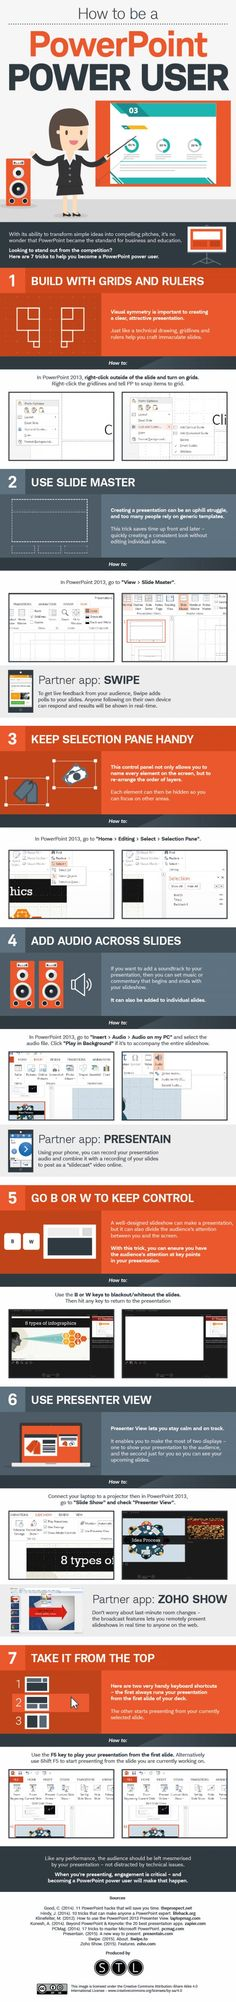 7 Cool Ways to Improve Any PowerPoint Presentation Want to be a PowerPoint power user? Read on.